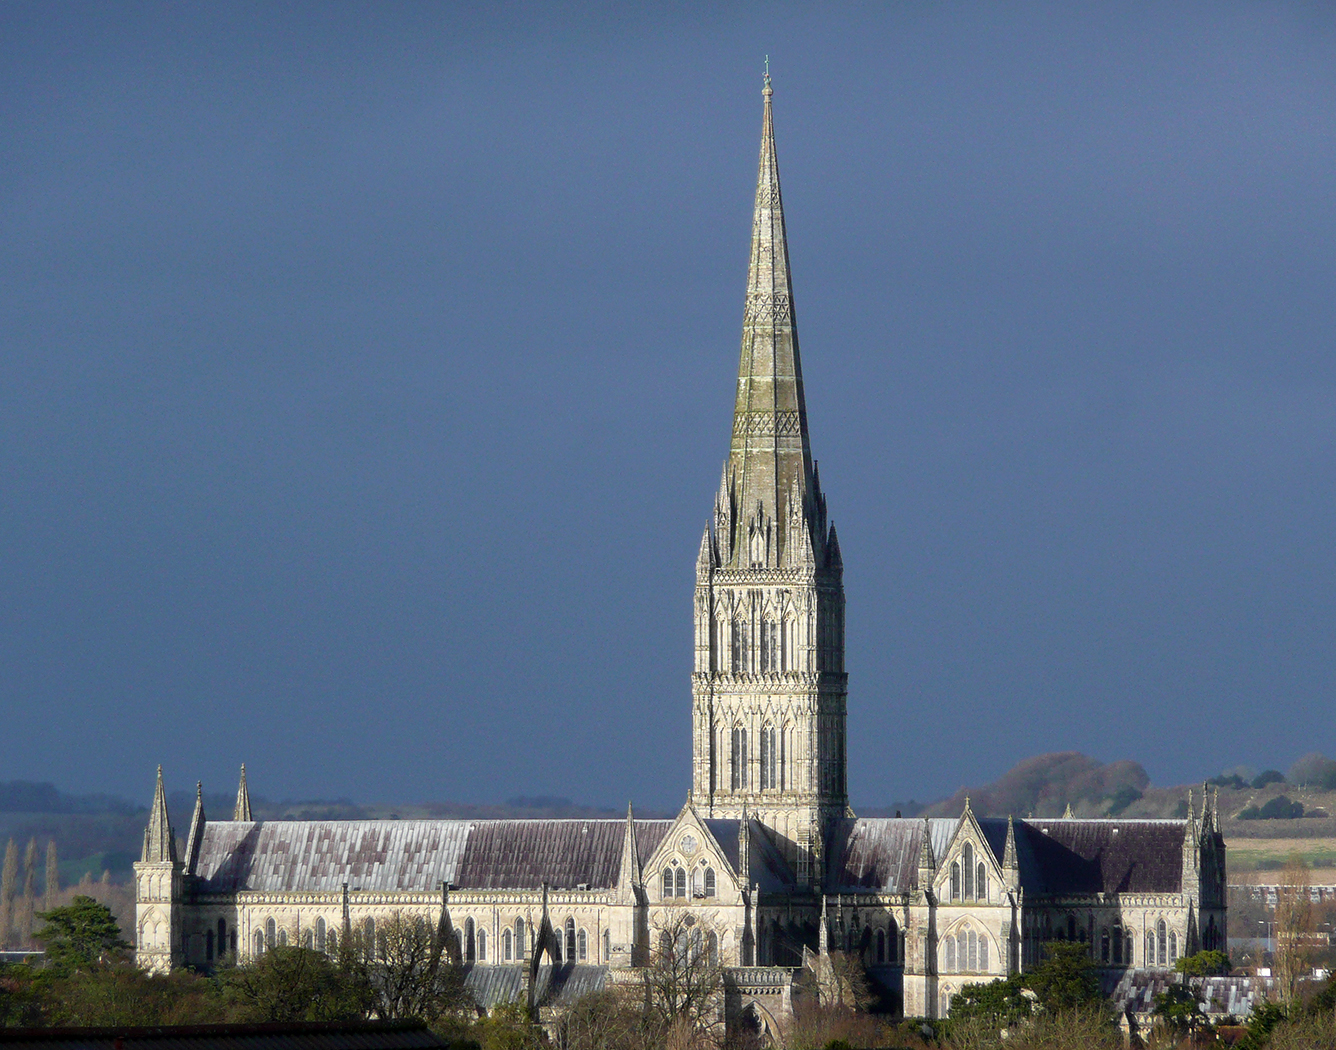 'Salisbury Cathedral' by Richard Temlett